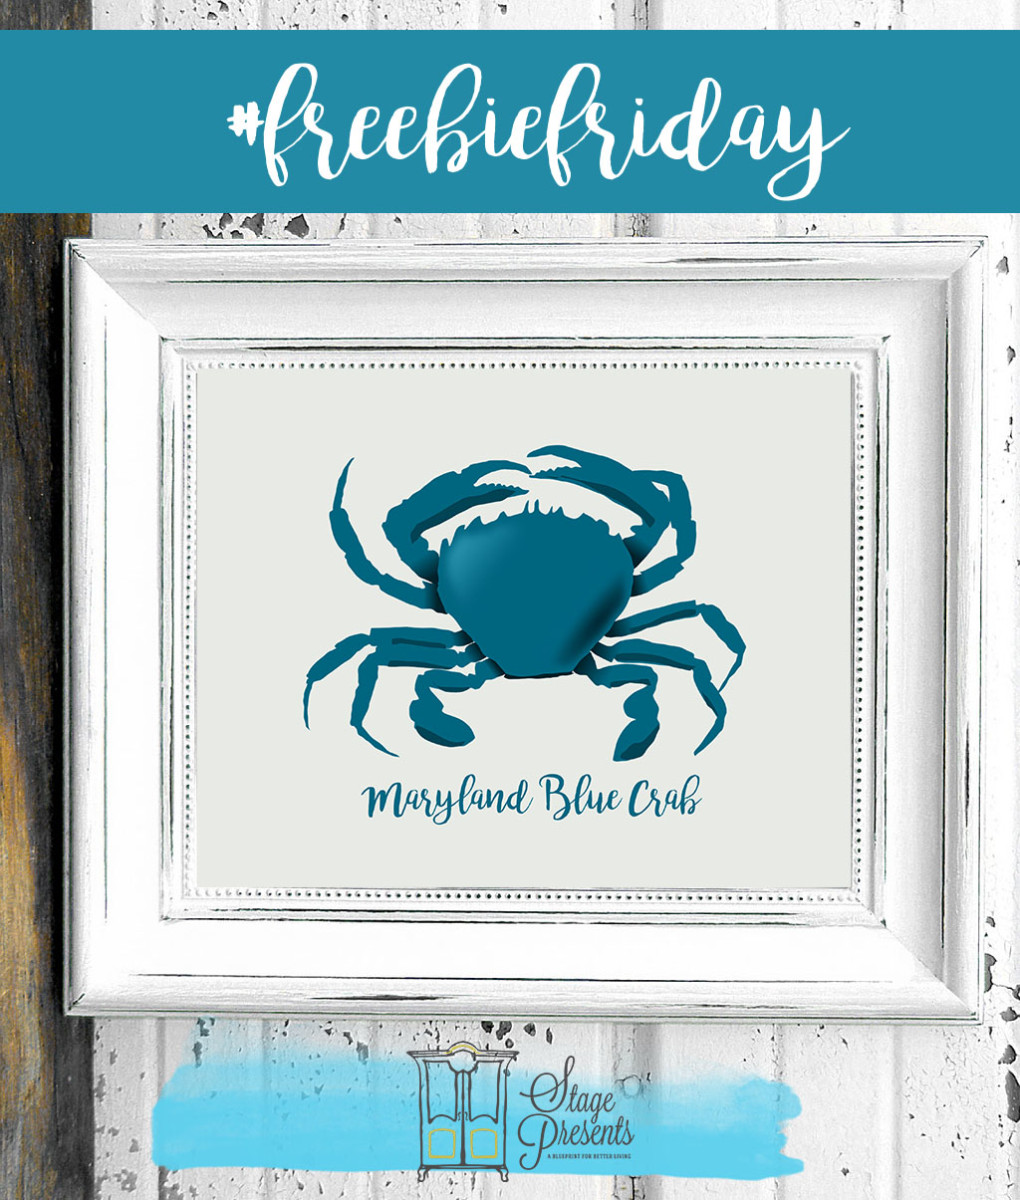 Freebie Friday - Maryland Blue Crab - Beach Printable - ©2016 Stage Presents